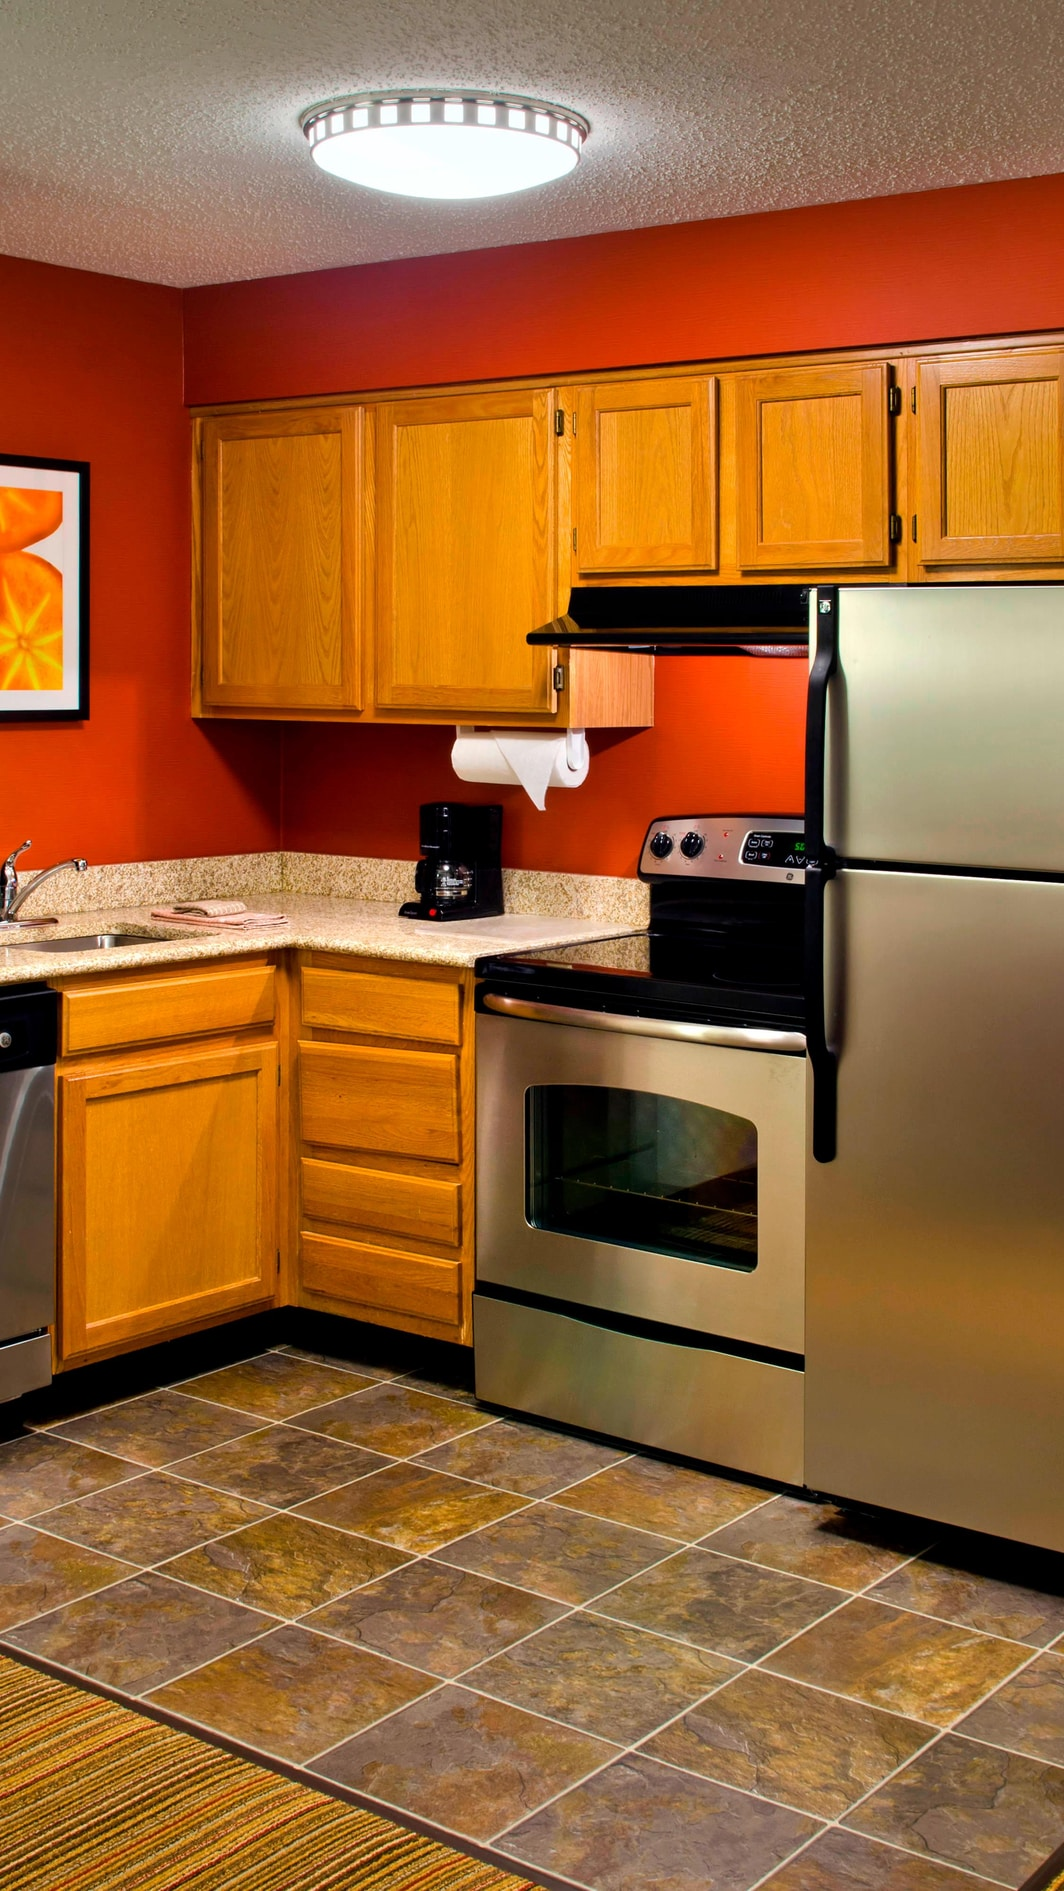 Parsippany NJ Hotel Suite Kitchen